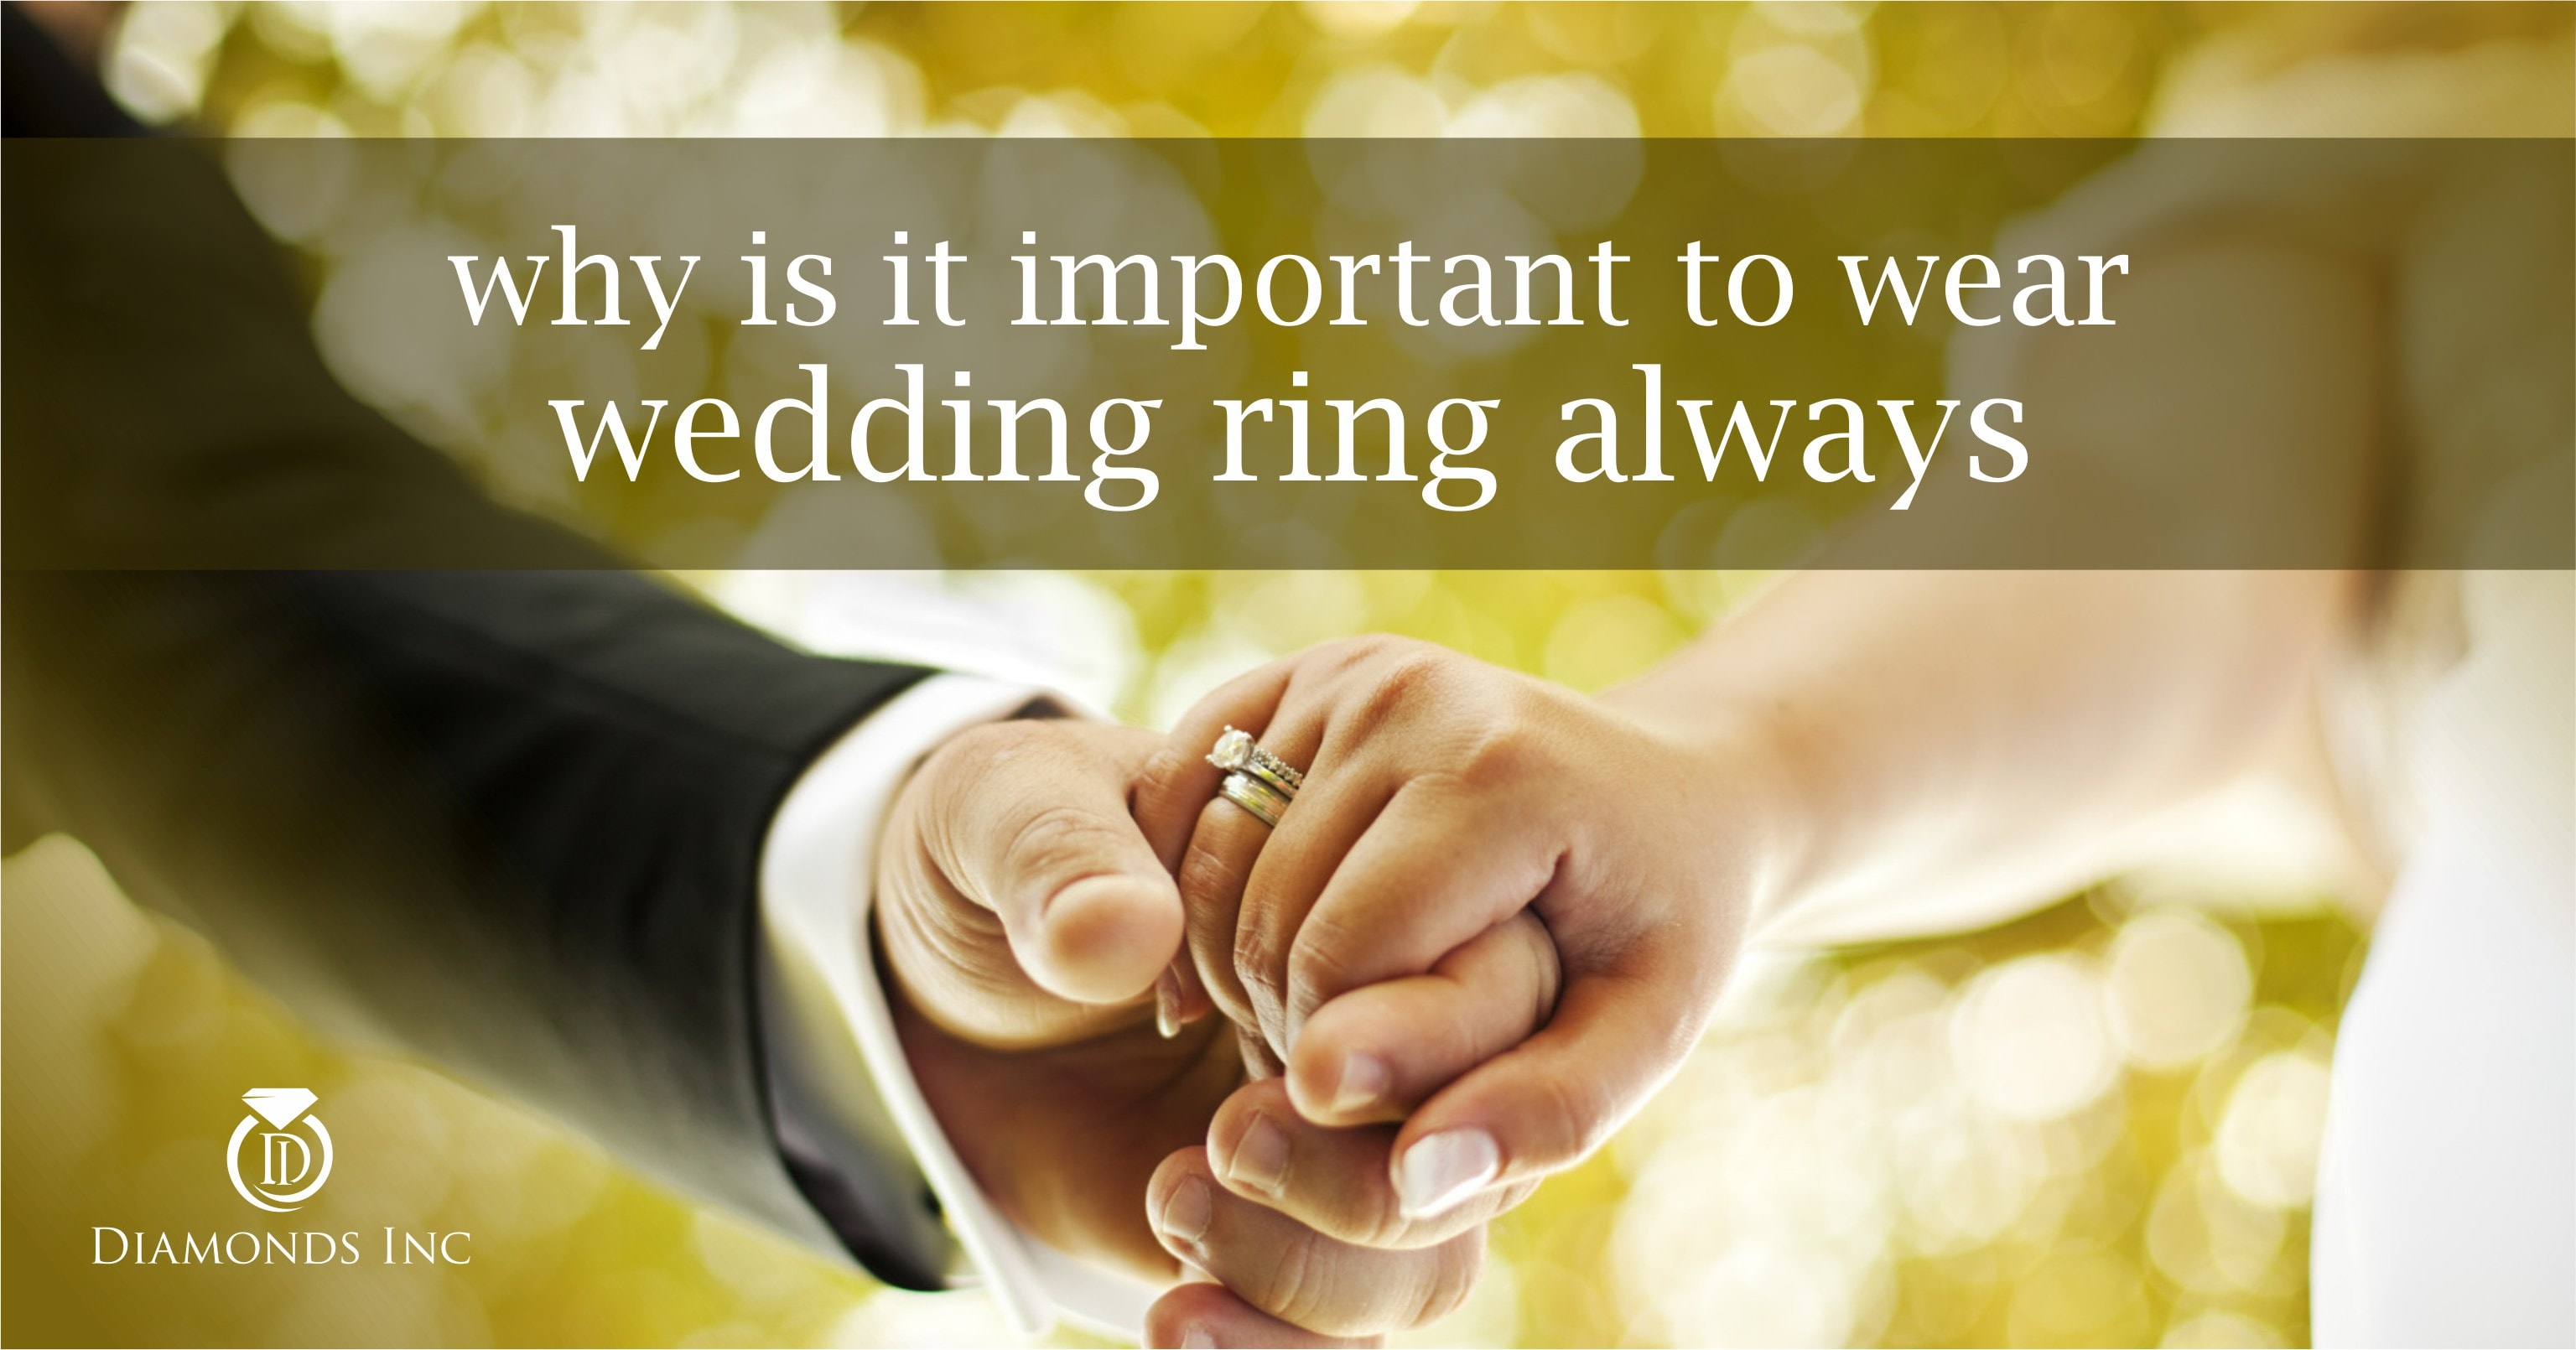 Why Is It Important To Wear Wedding Ring Always?